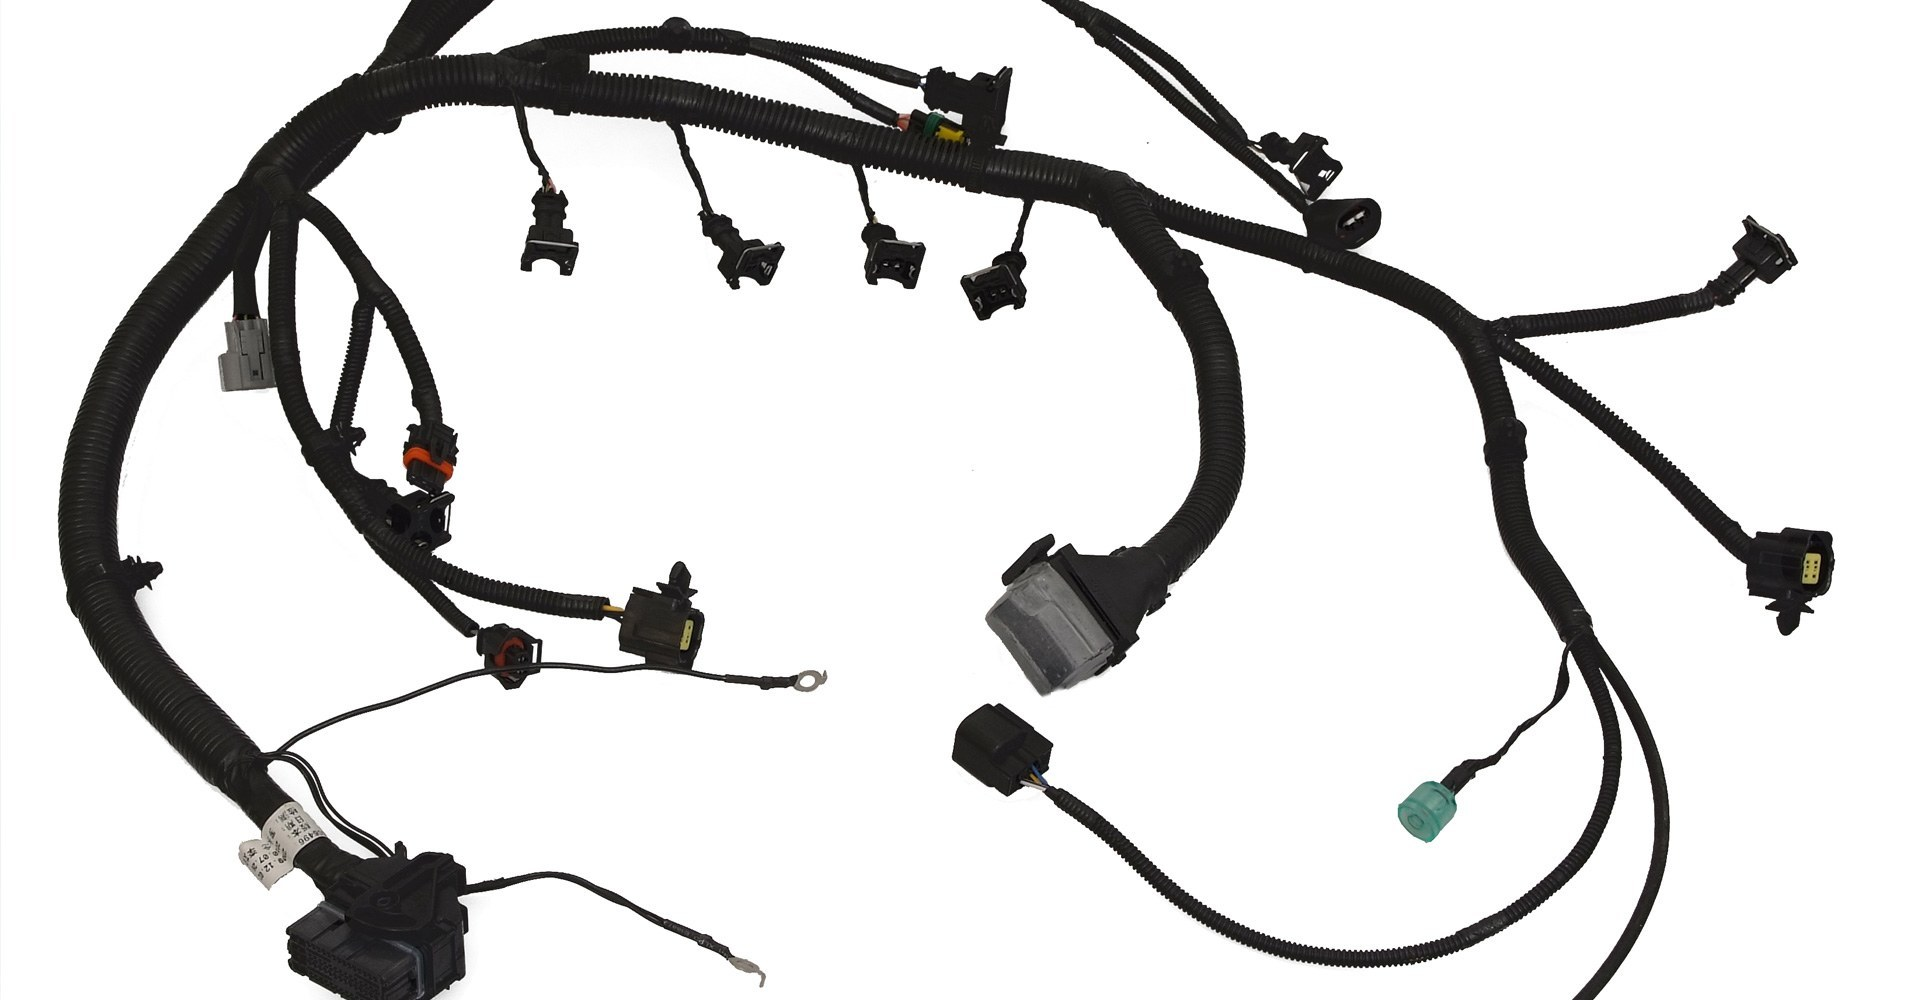 wireharness automotive wire harness products lorom automotive wiring harness at readyjetset.co